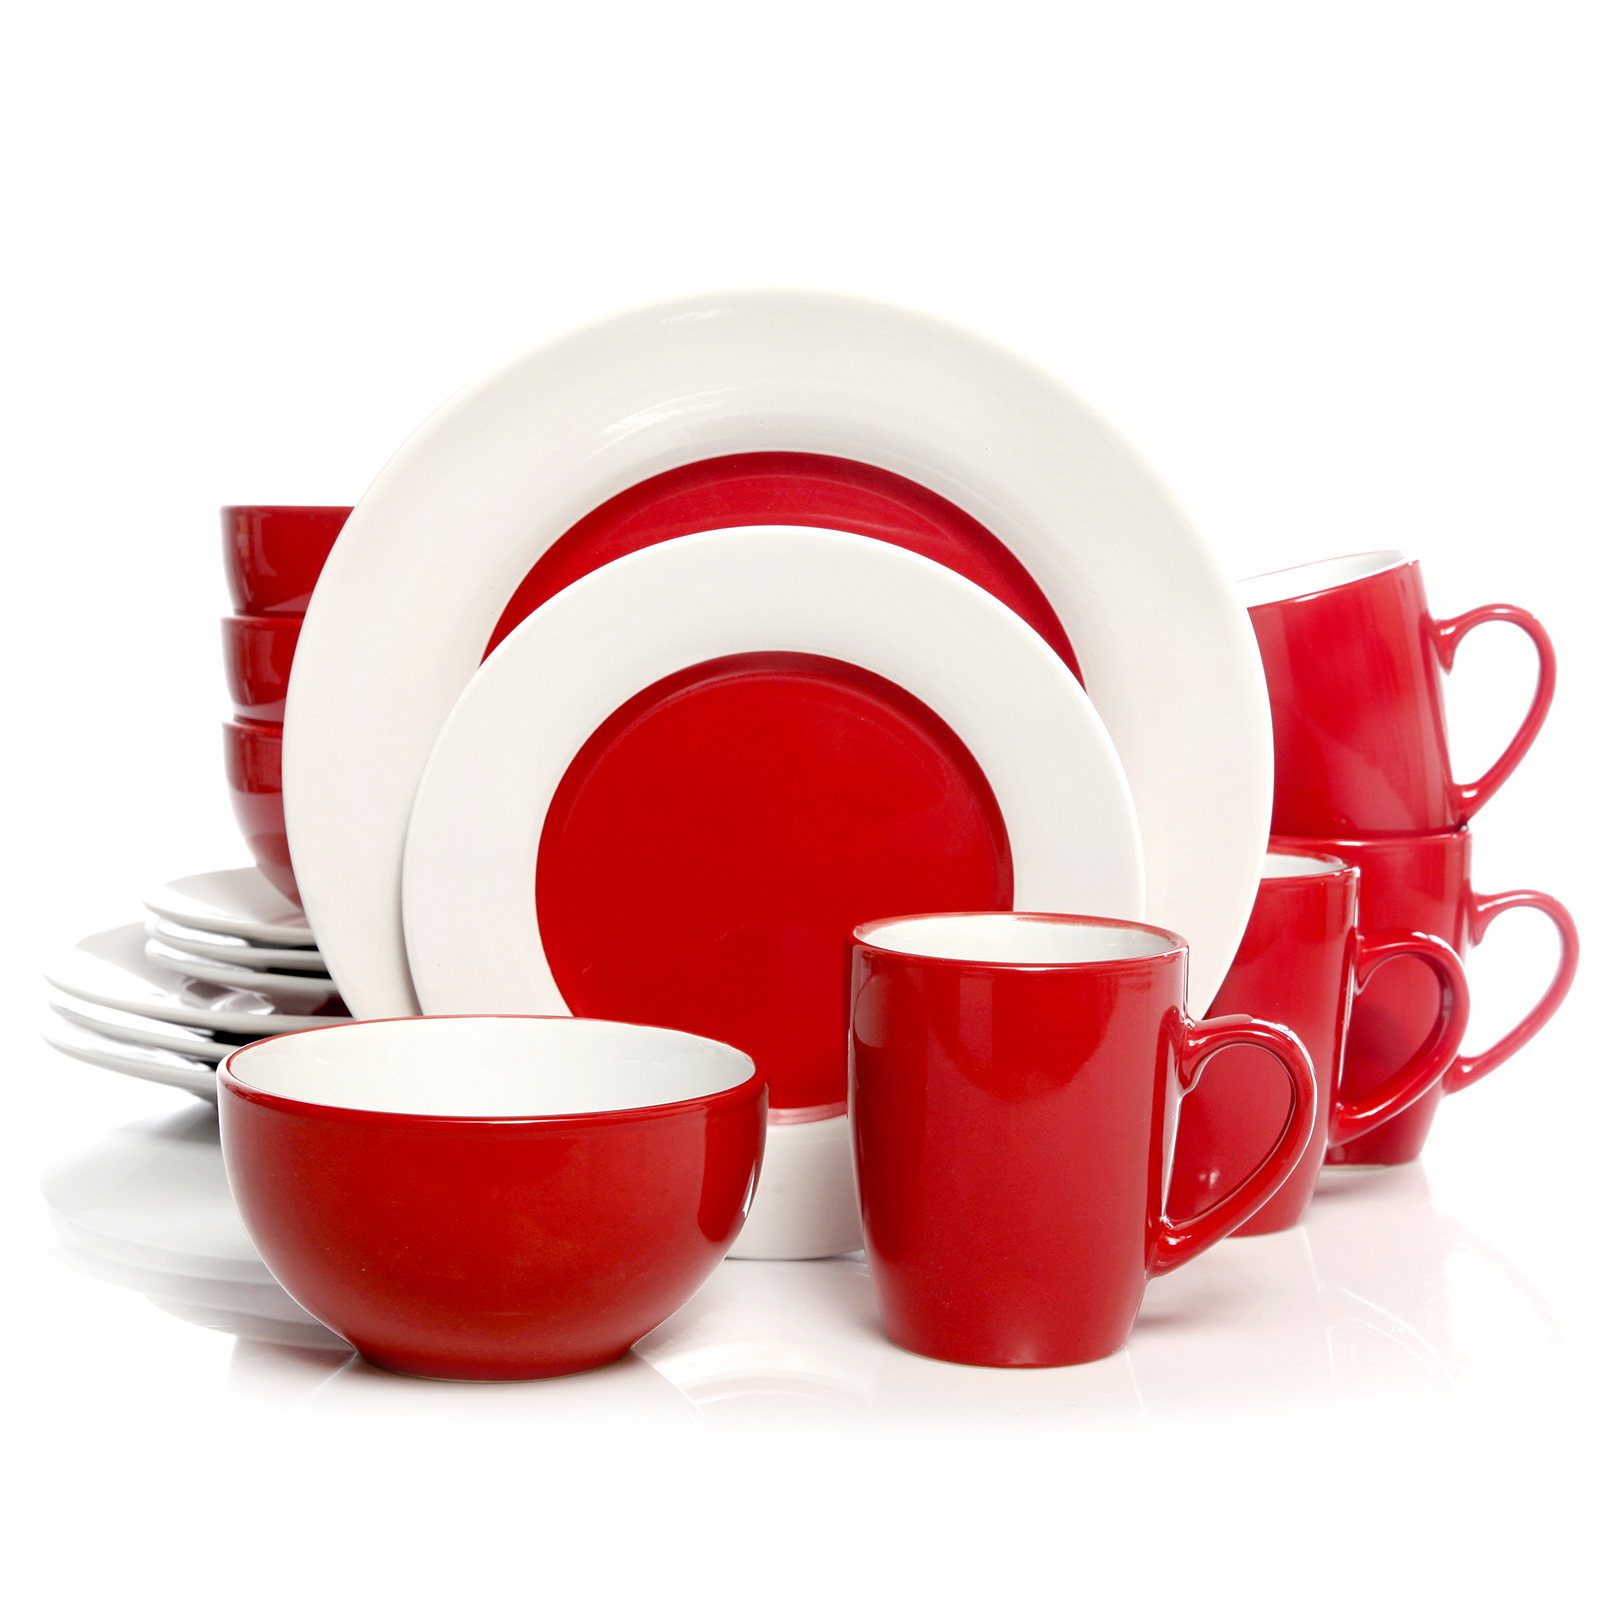 Gibson Home Style Deluxe 16-Piece Dinnerware Set Red  sc 1 st  Walmart : home dinnerware set - pezcame.com